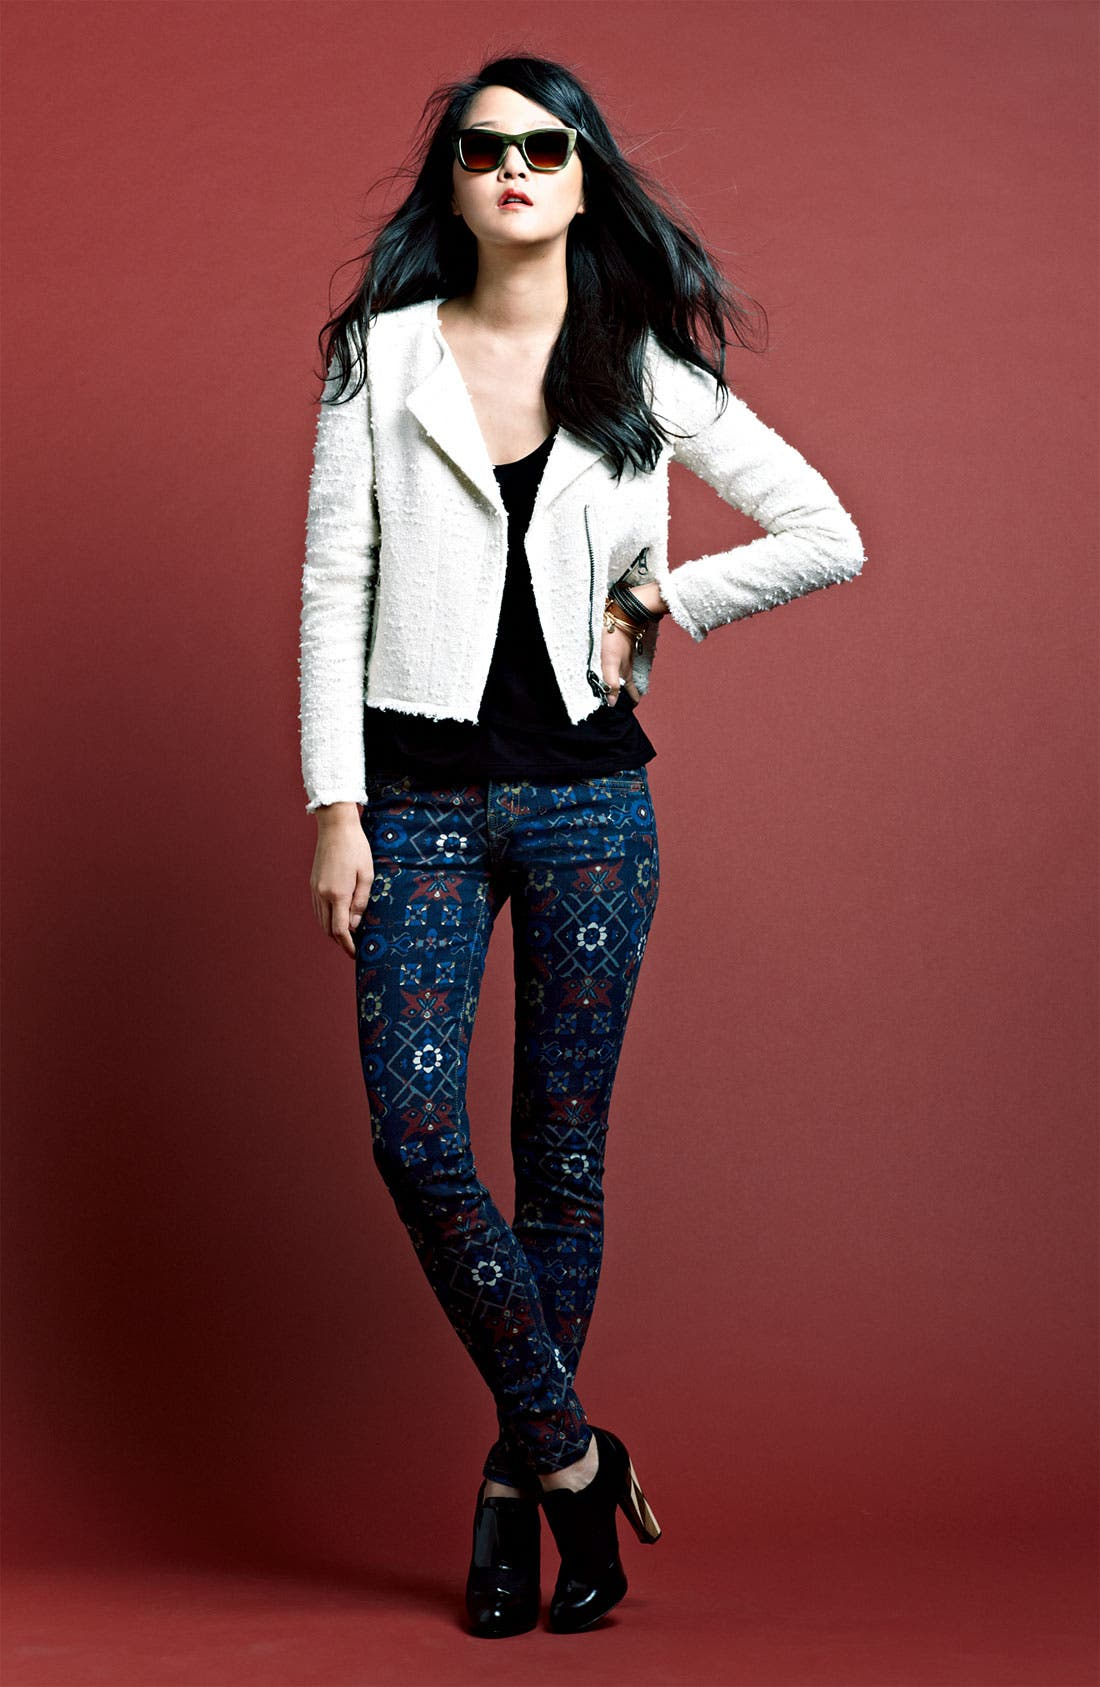 Alternate Image 1 Selected - Truth & Pride Jacket, Soft Joie Top & Current/Elliott Jeans